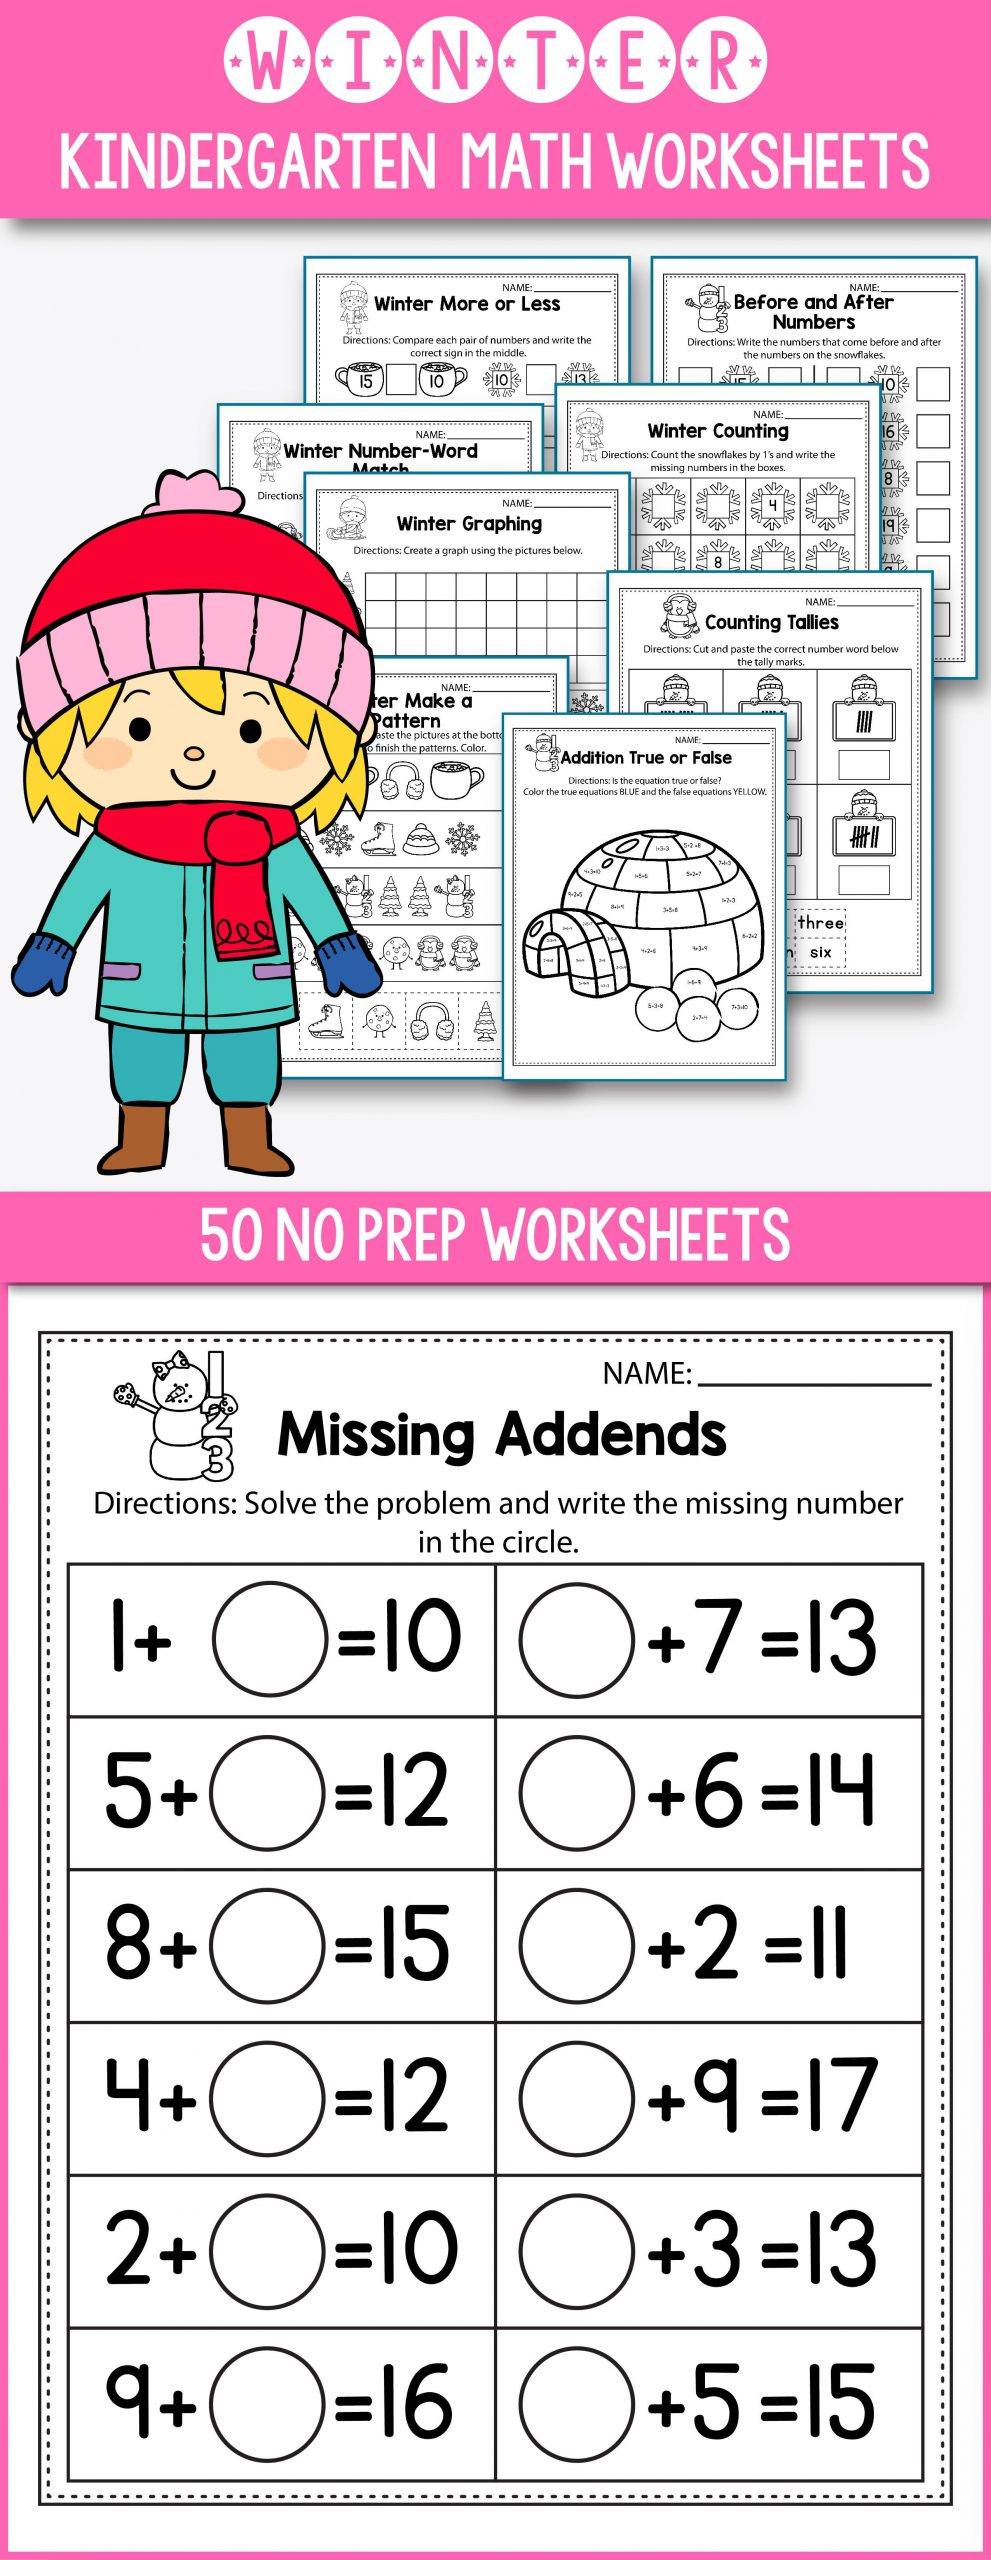 Winter Worksheets for First Grade Winter Activities for Kindergarten Math No Prep Winter